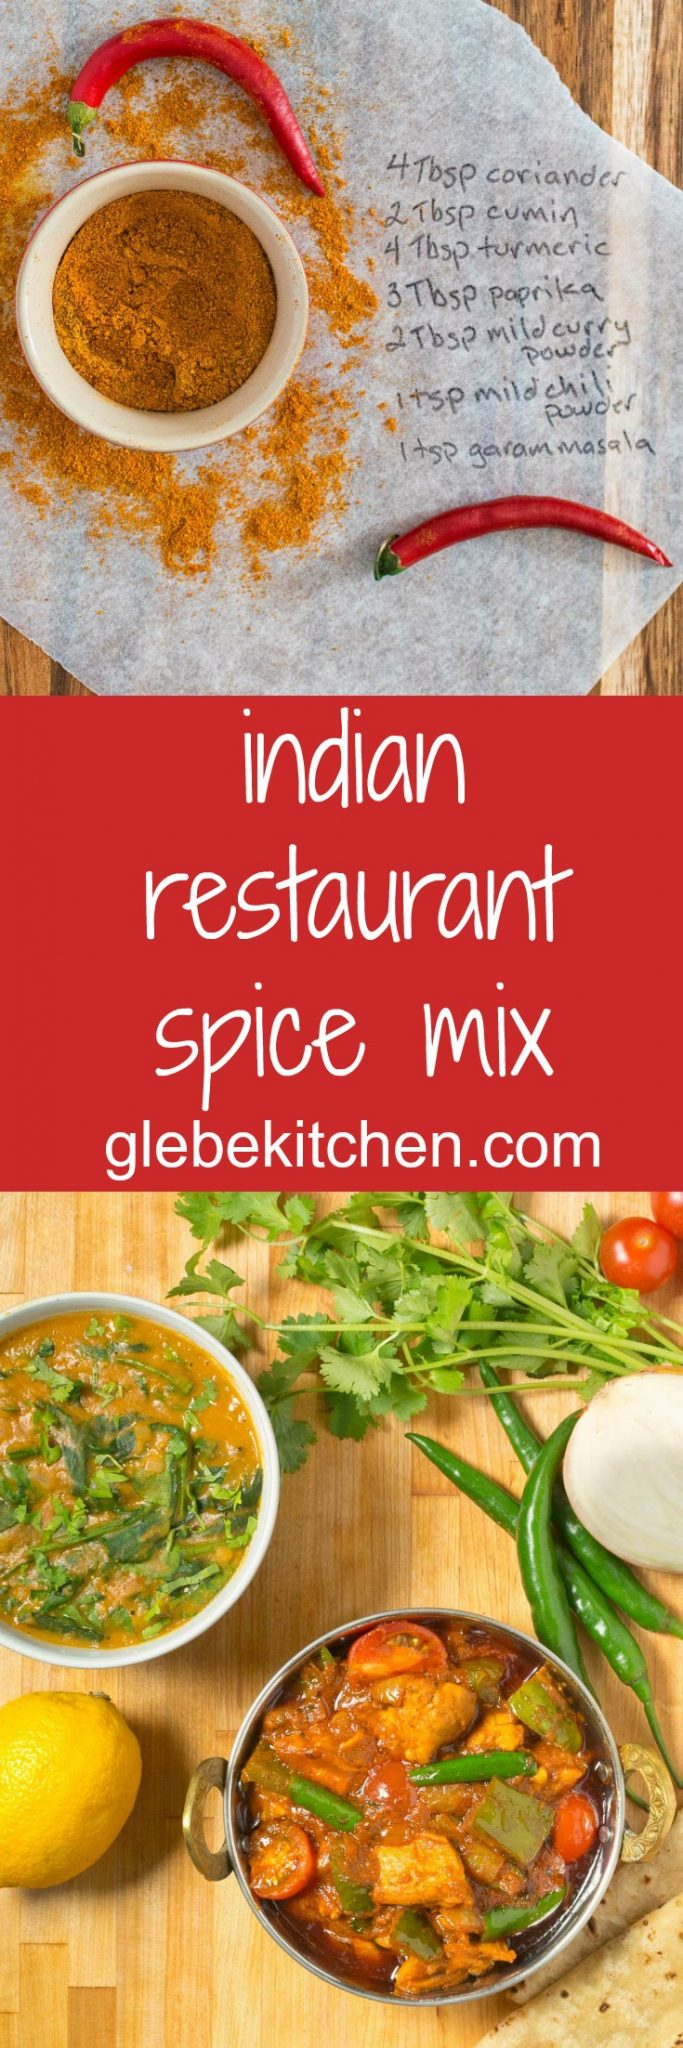 Indian restaurant spice mix glebe kitchen for 7 spice indian cuisine